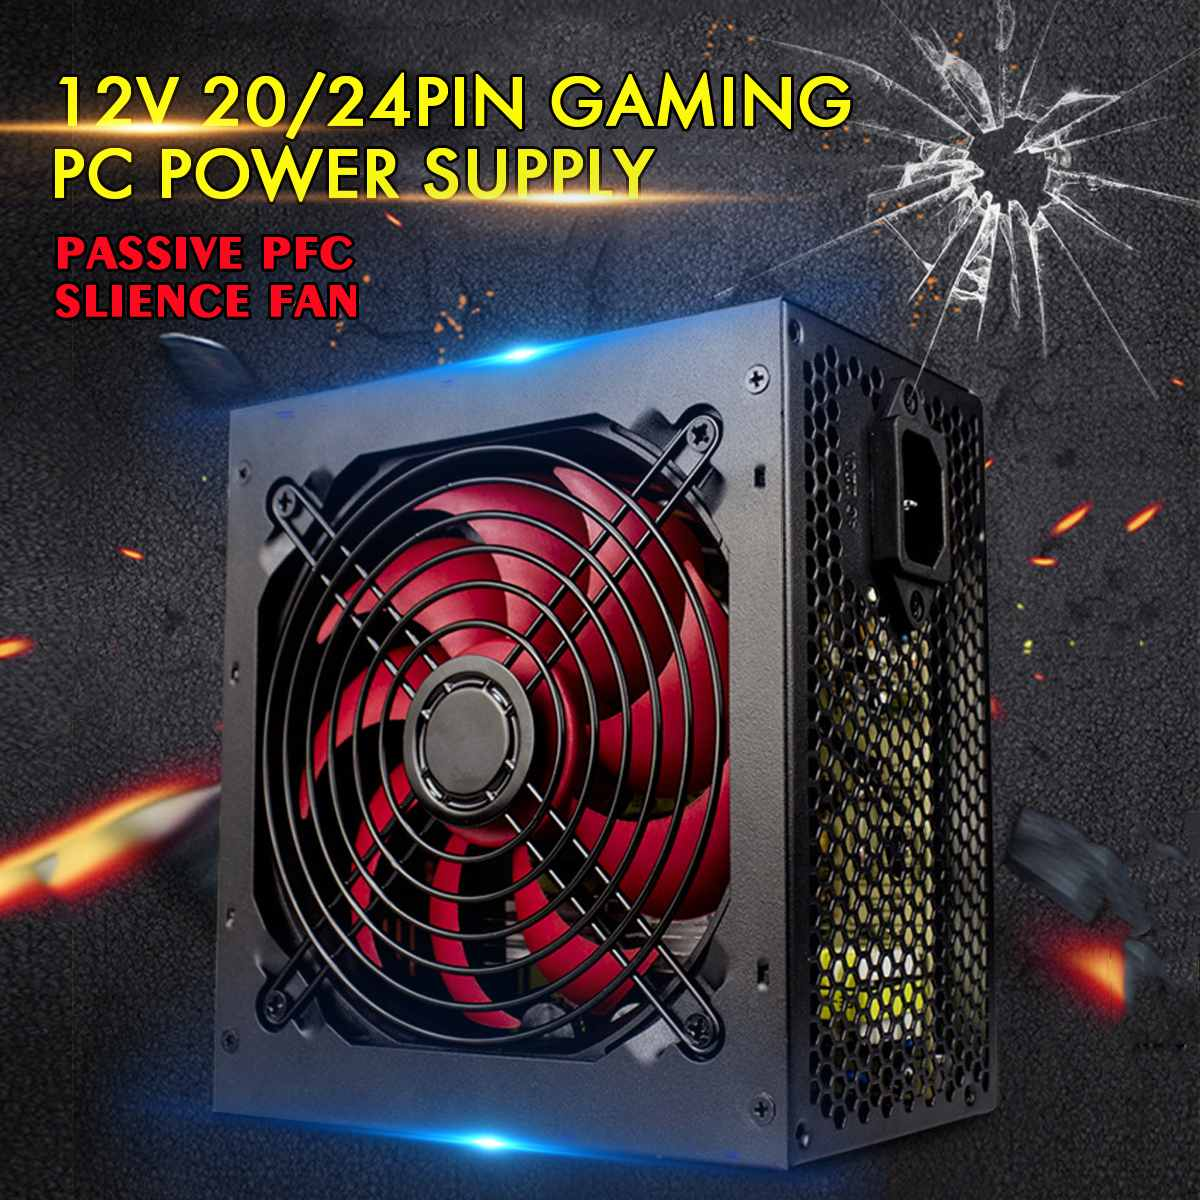 Max 650W alimentation Passive PFC ventilateur silencieux ATX 20/24pin 12V PC ordinateur SATA Gaming PC alimentation